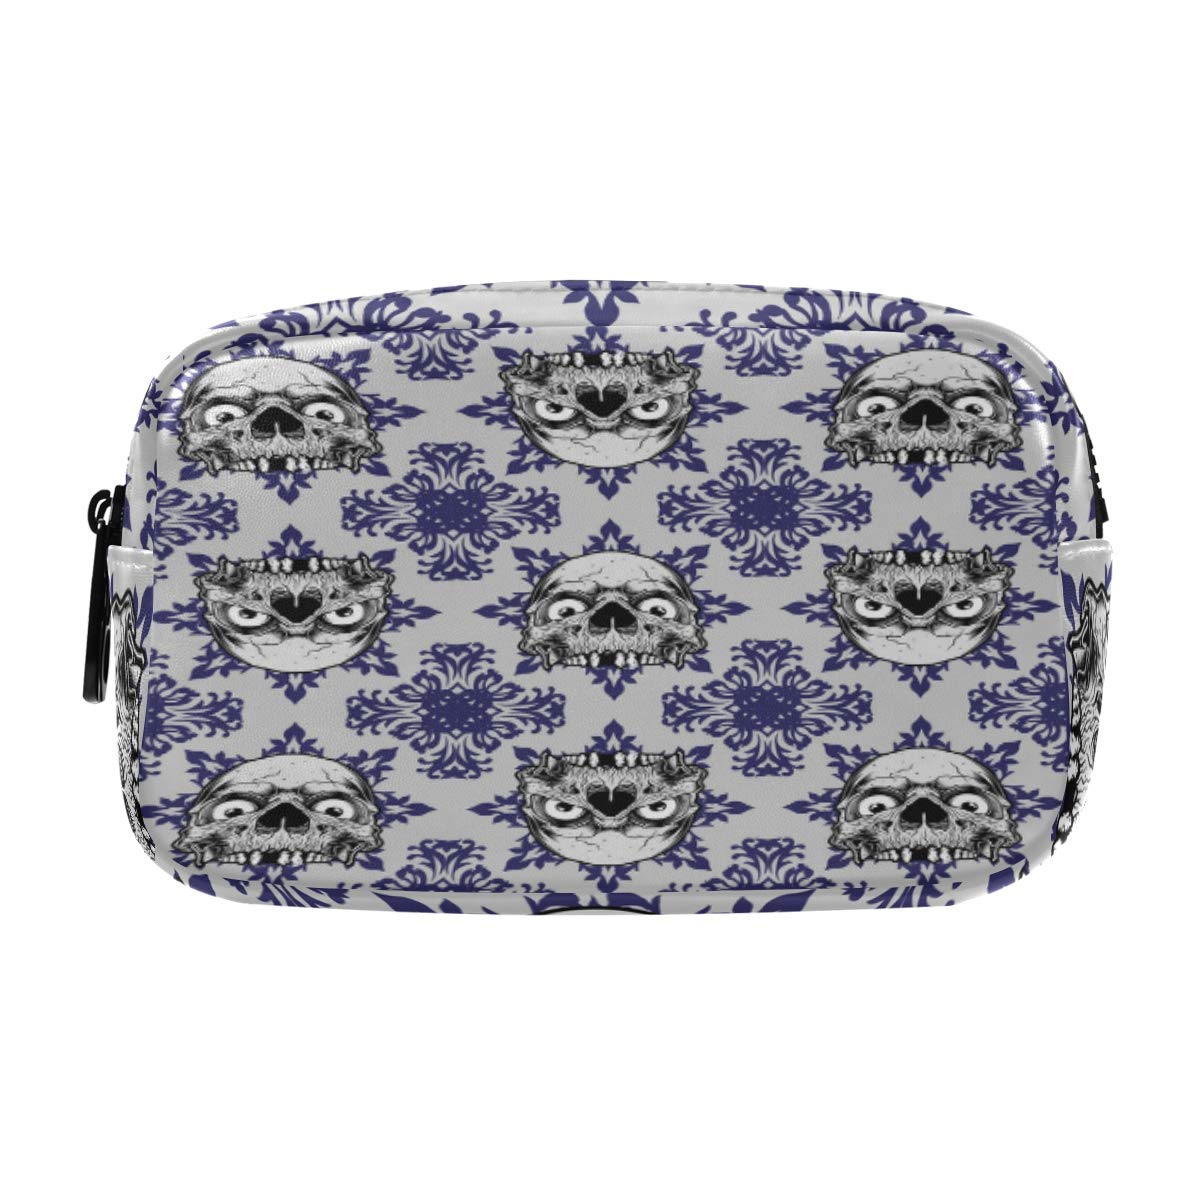 ALAZA Skull on Ethnic Background Cosmetic Bag Leather Pencil Case Waterproof Portable Travel Makeup Pouch with Zipper for Women Girls Teens